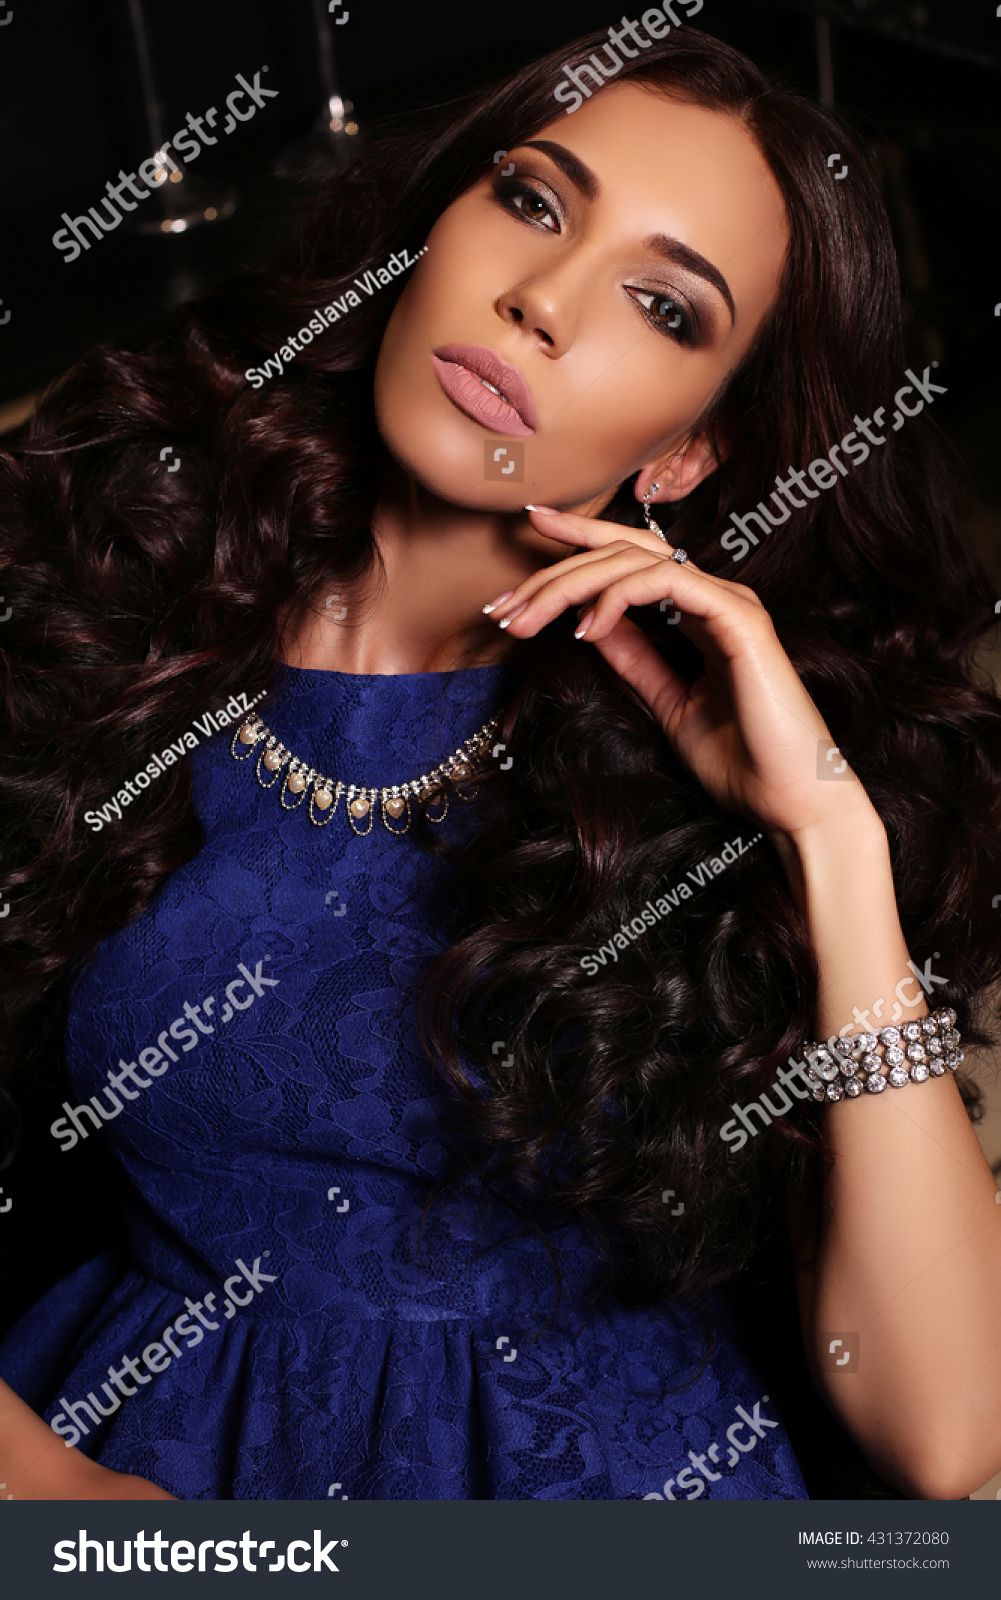 7b28e0bee7e fashion interior photo of gorgeous woman with long dark hair in luxurious  dress with accessories